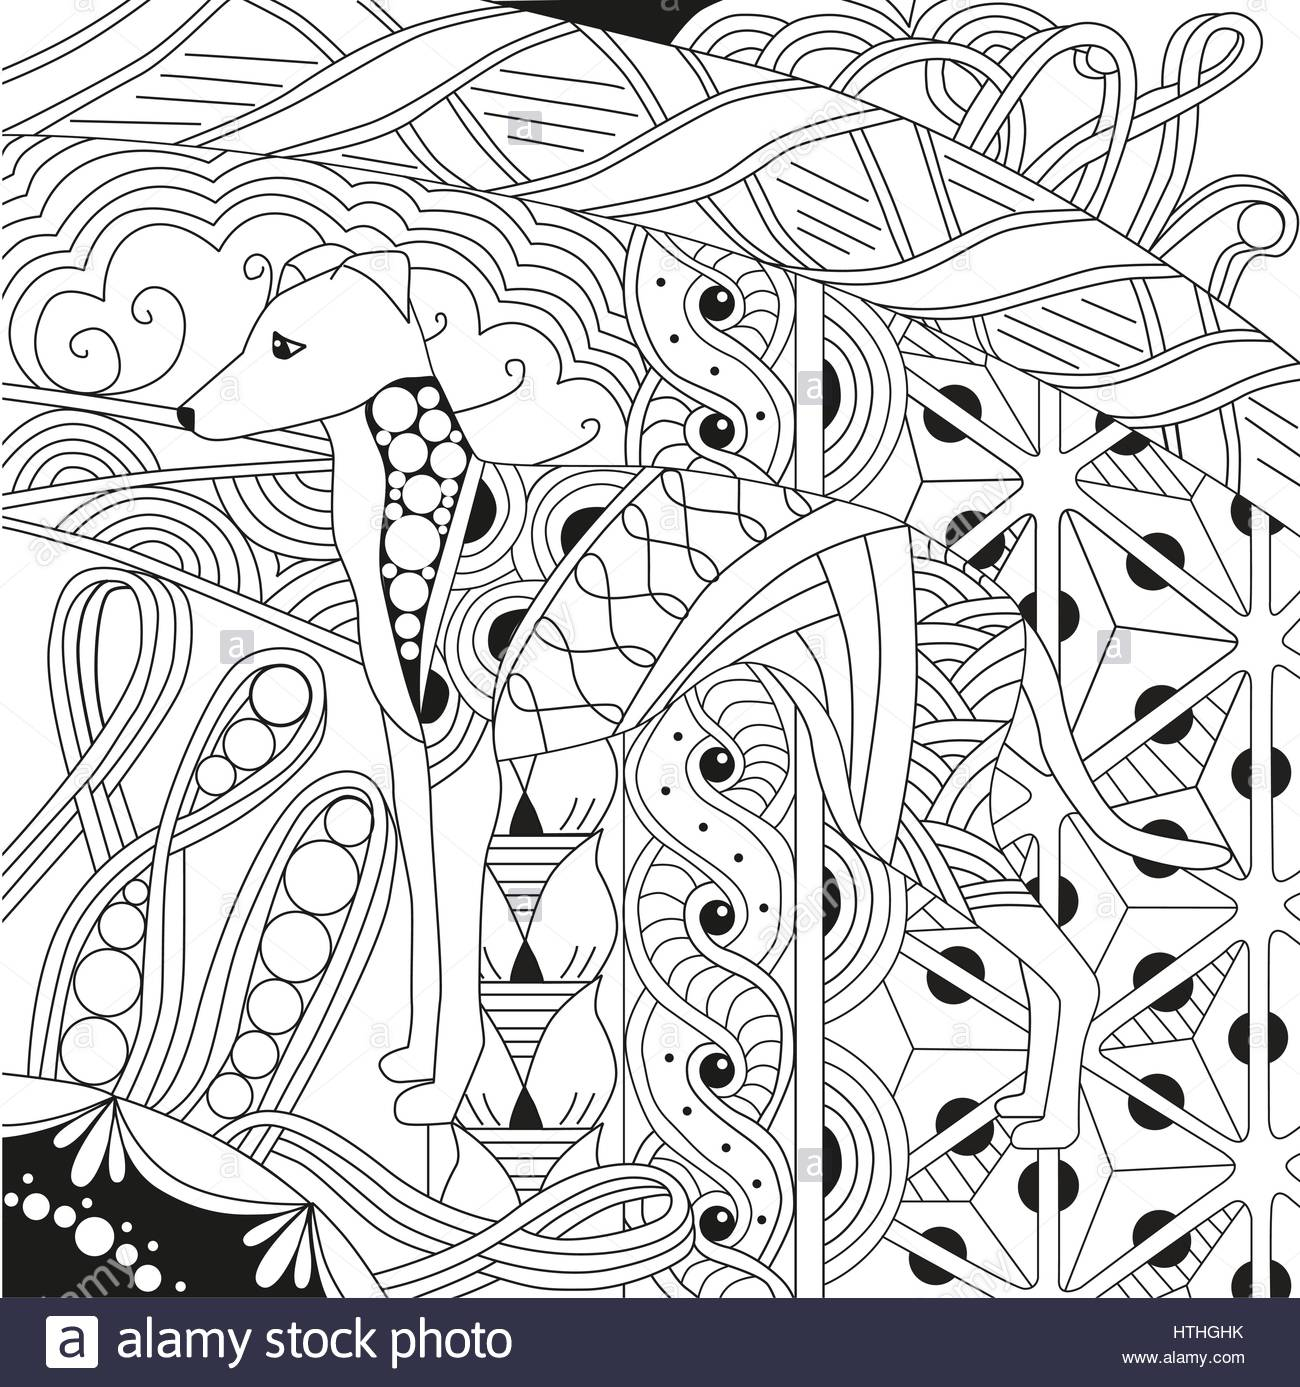 1300x1387 Zentangle Stylized Dog. Hand Drawn Lace Vector Illustration Stock